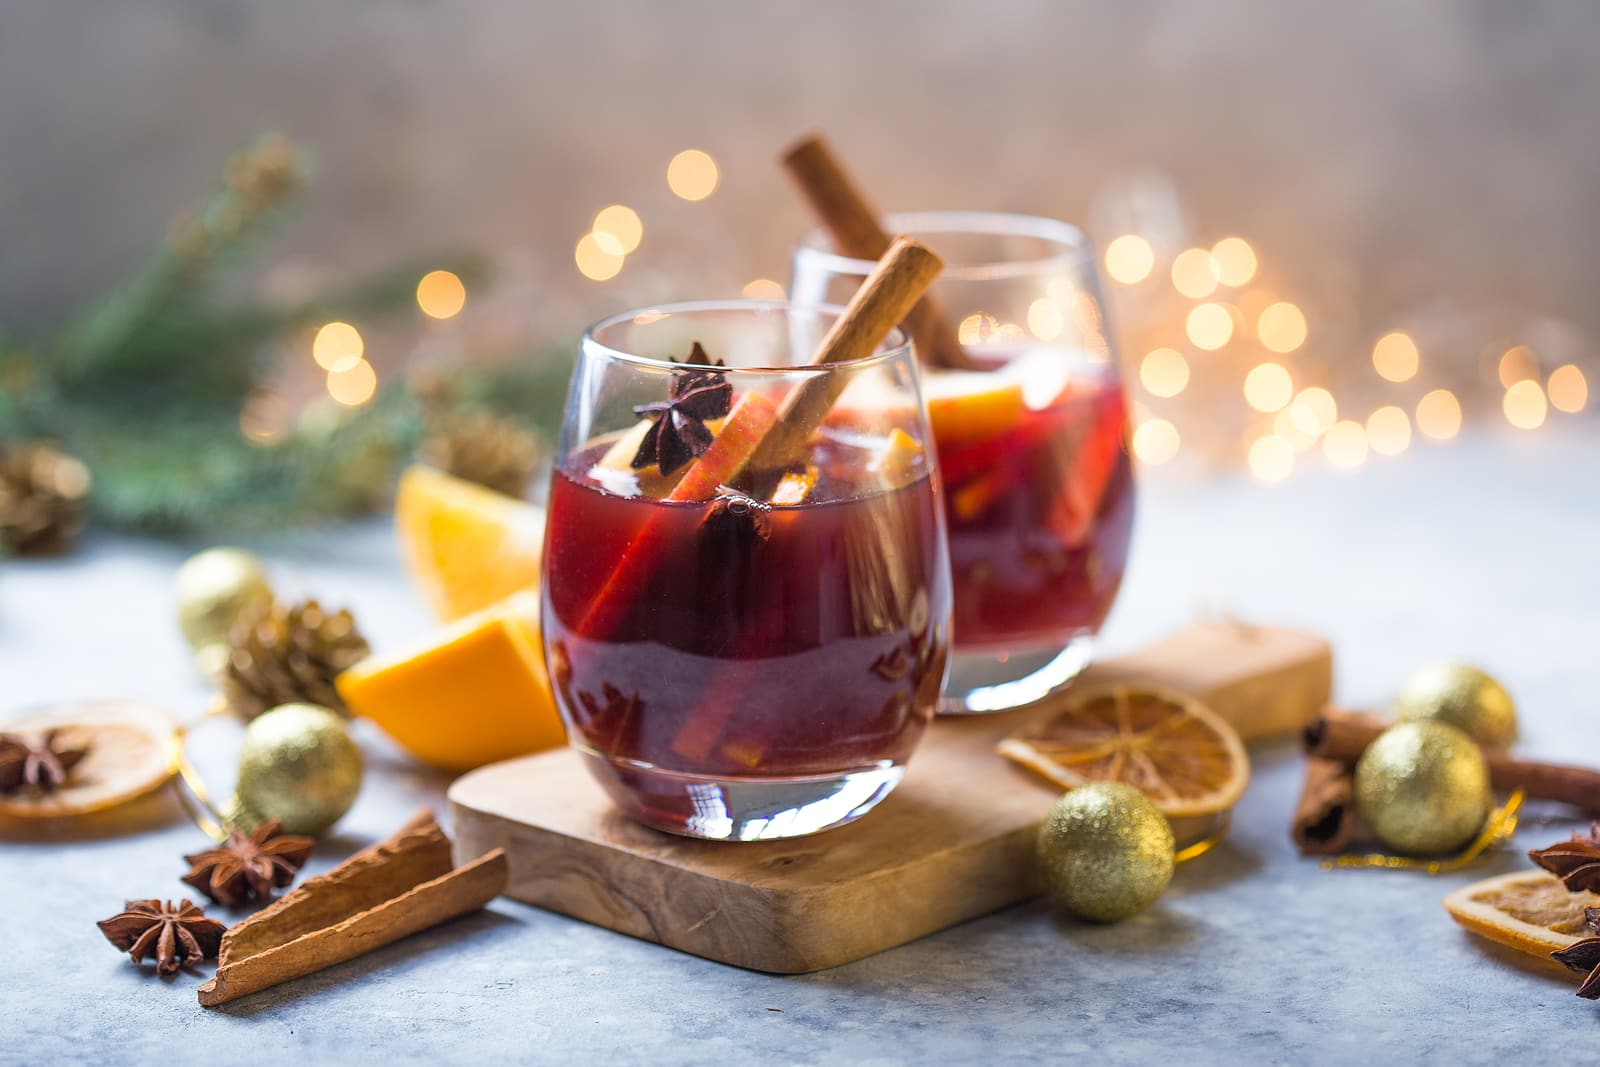 Is alcohol bad for hormones? Two glasses of mulled wine